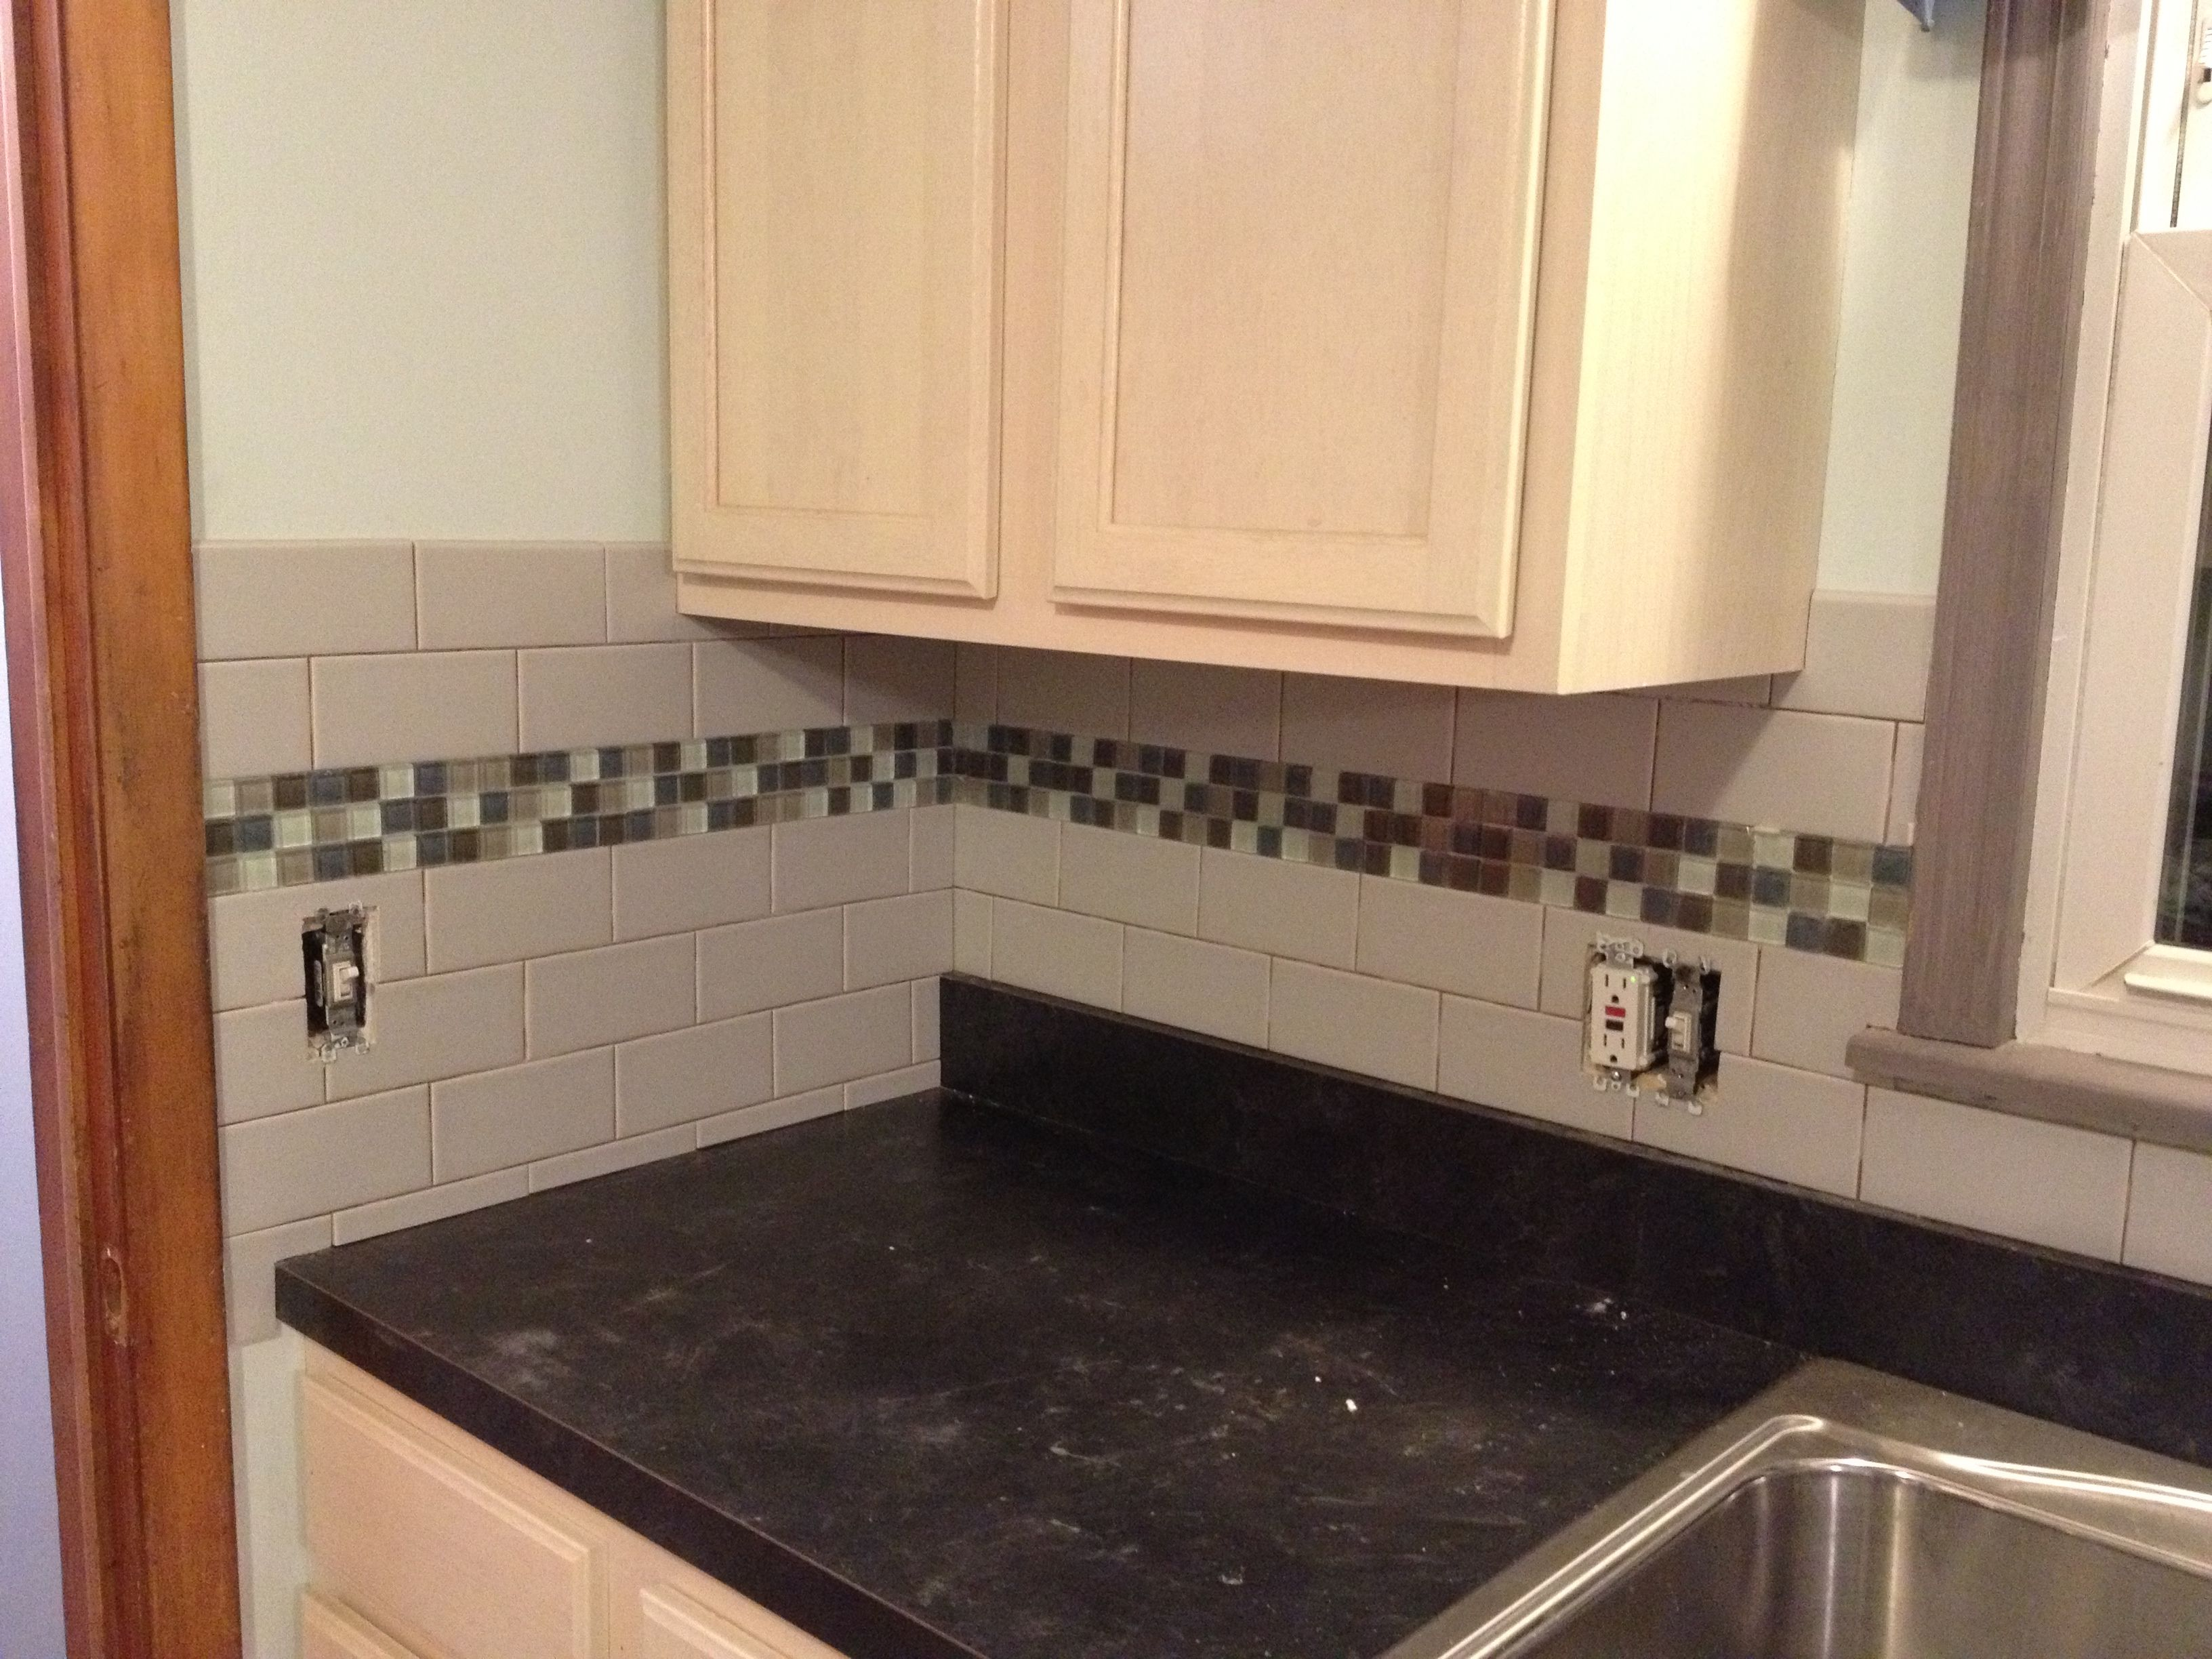 Kitchen Backsplash Accent Tiles Photos subway tile backsplash with glass tile accent, love my kitchen